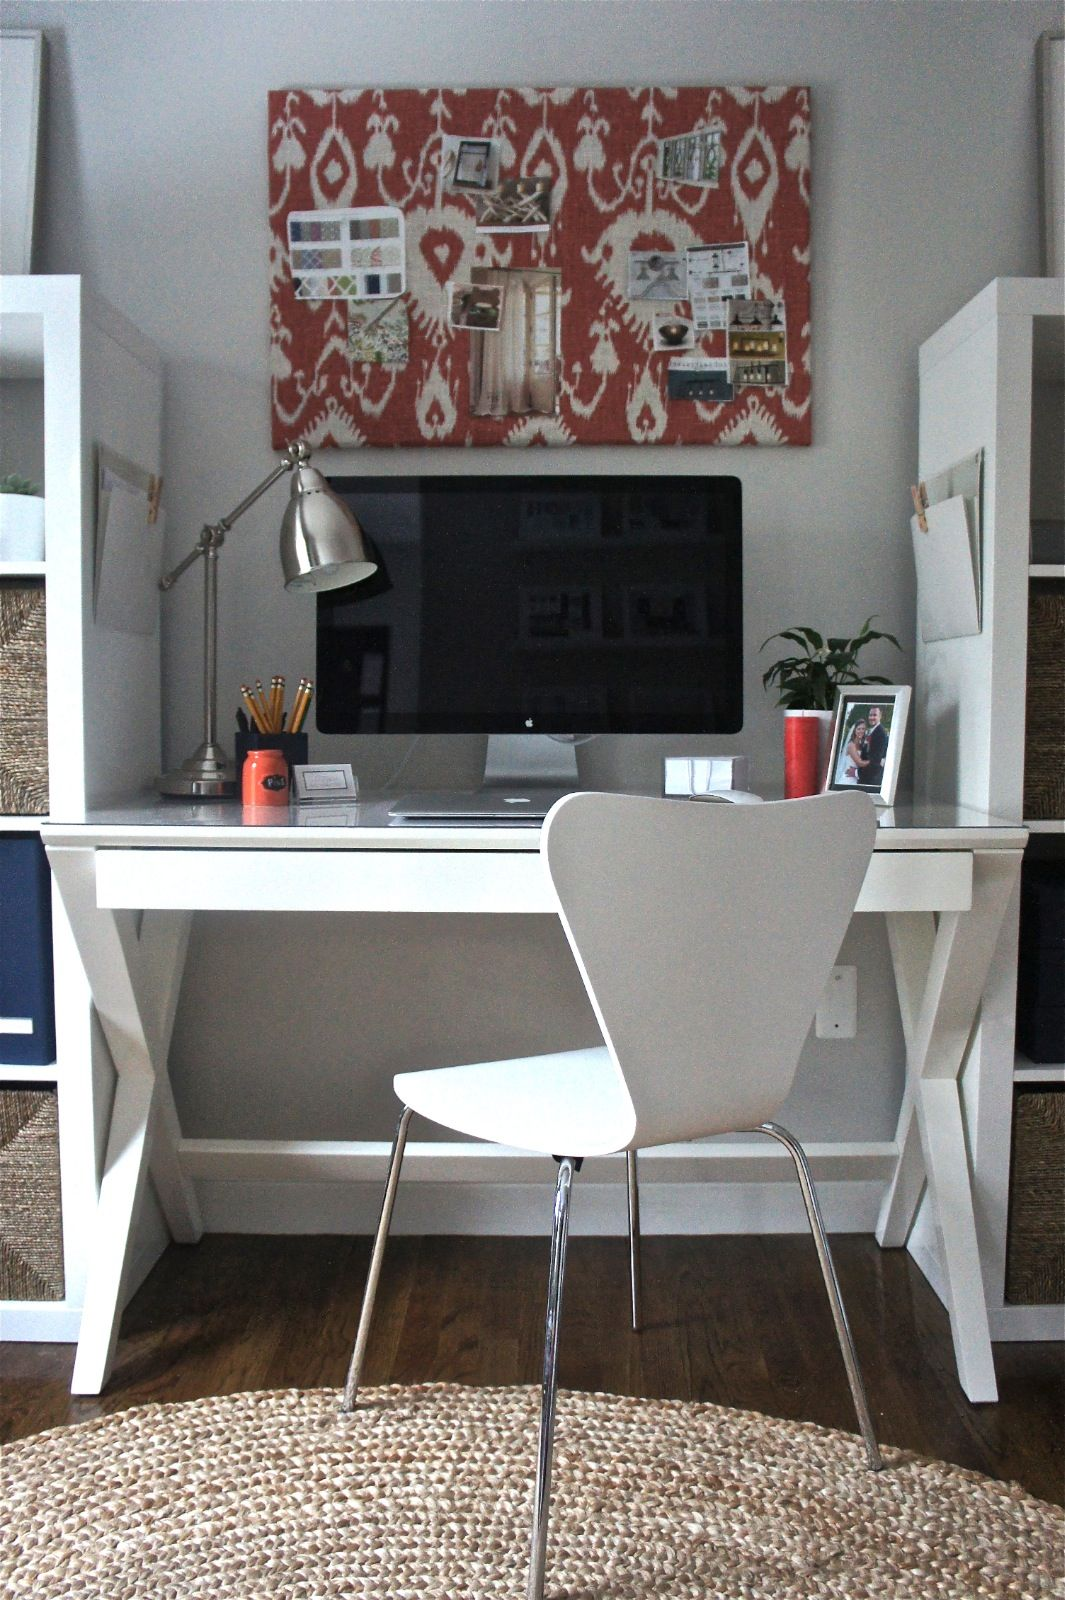 Affordable Home Office Makeover wwwhomewithbaxtercom Affordable Home